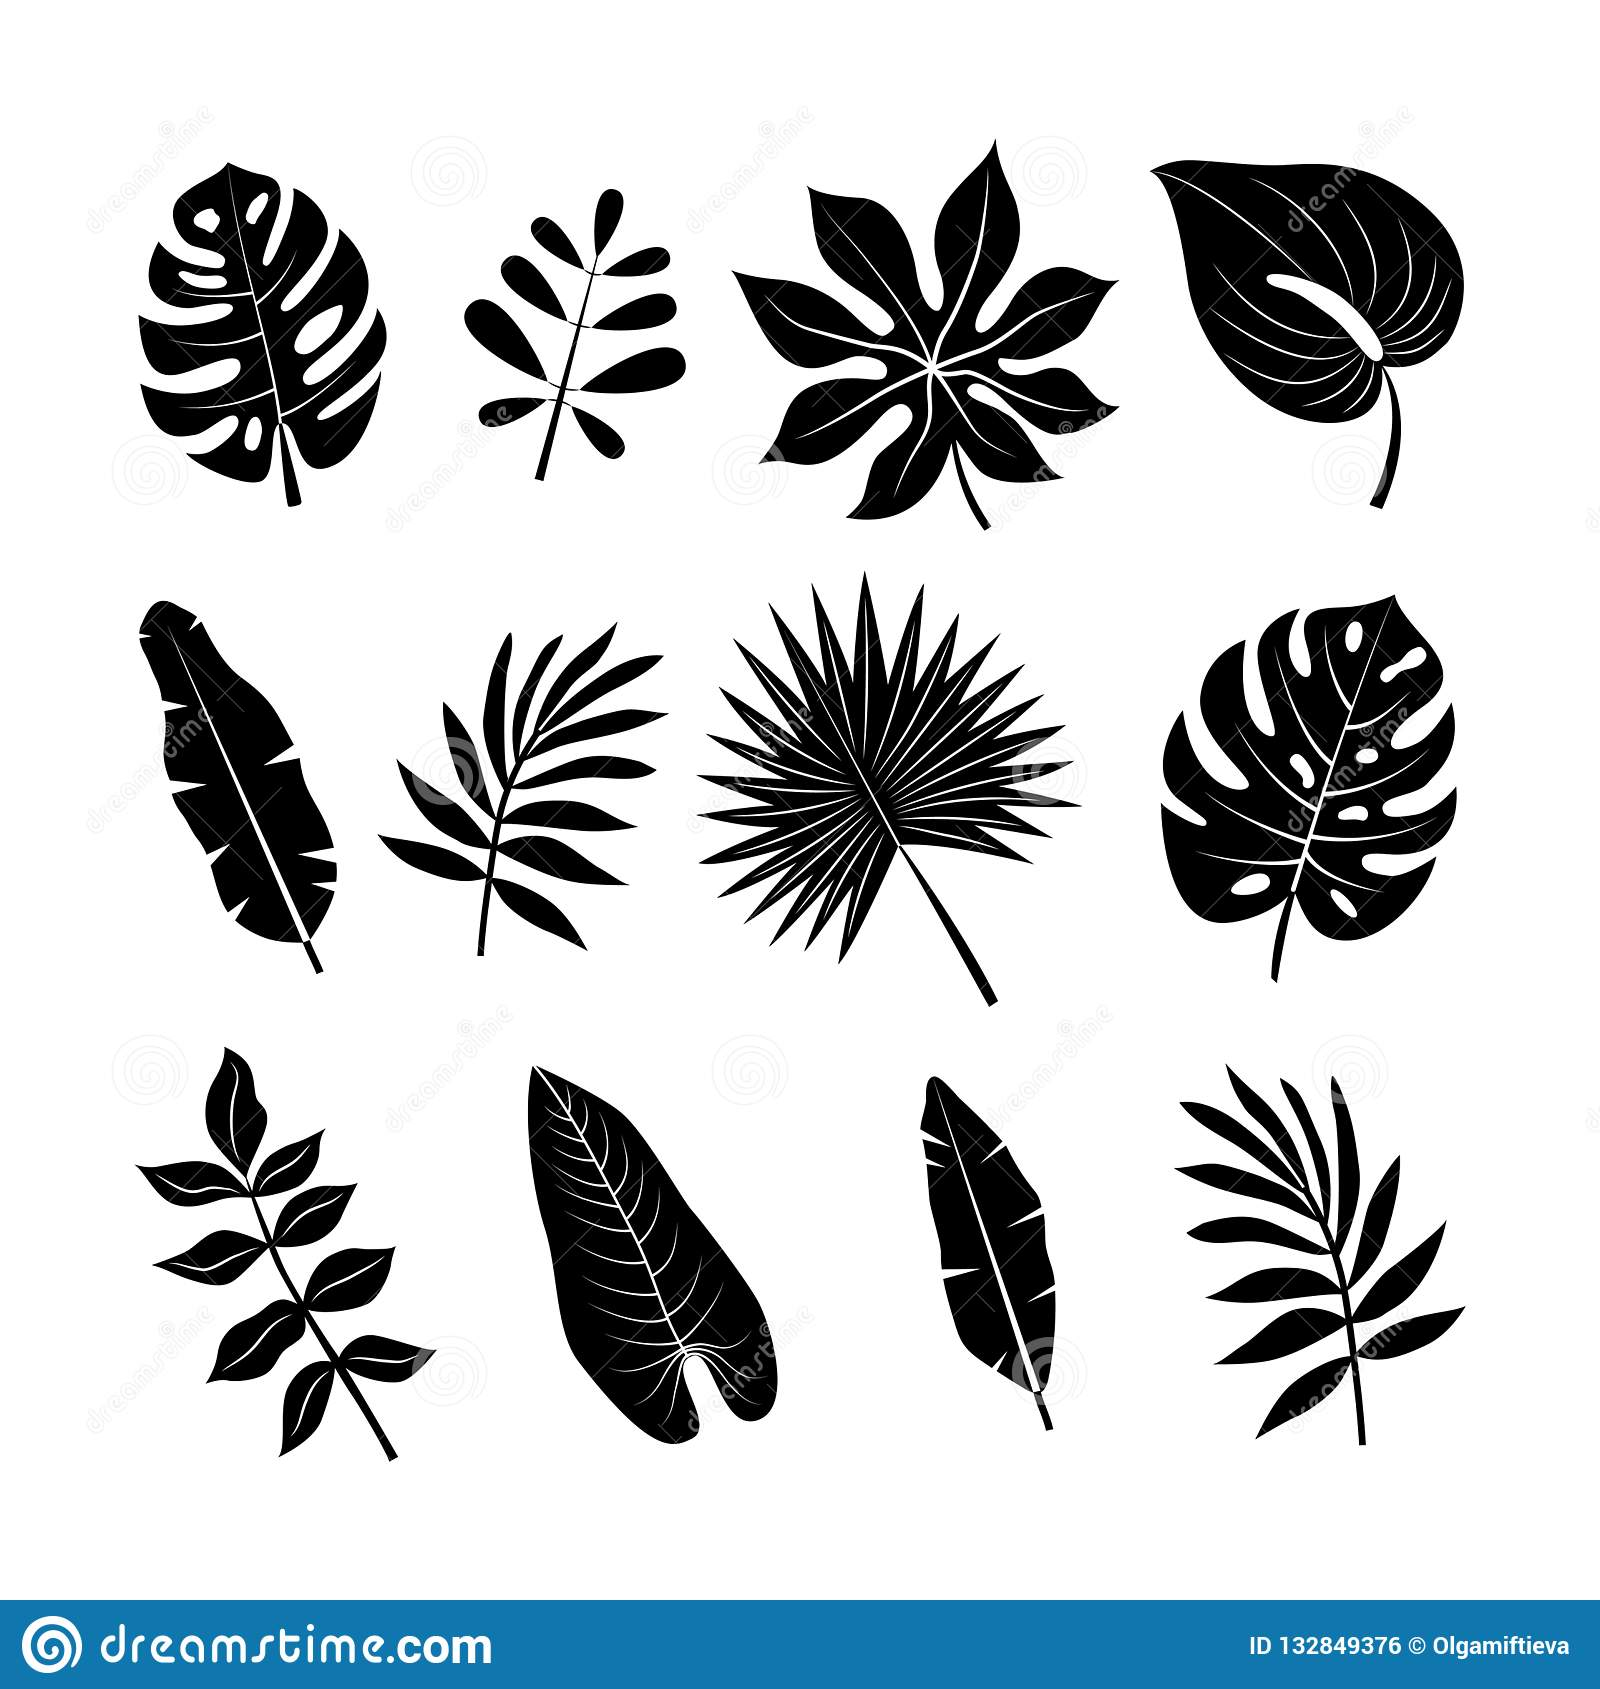 Tropical Leaves Silhouettes Set Jungle Palm Leaves Collection Stock Vector Illustration Of Decoration Hawaii 132849376 Tropical leaves and flowers in the night style for men's prints. https www dreamstime com tropical leaves silhouettes set jungle palm collection floral clip art exotic botanical print vector black isolated elements image132849376